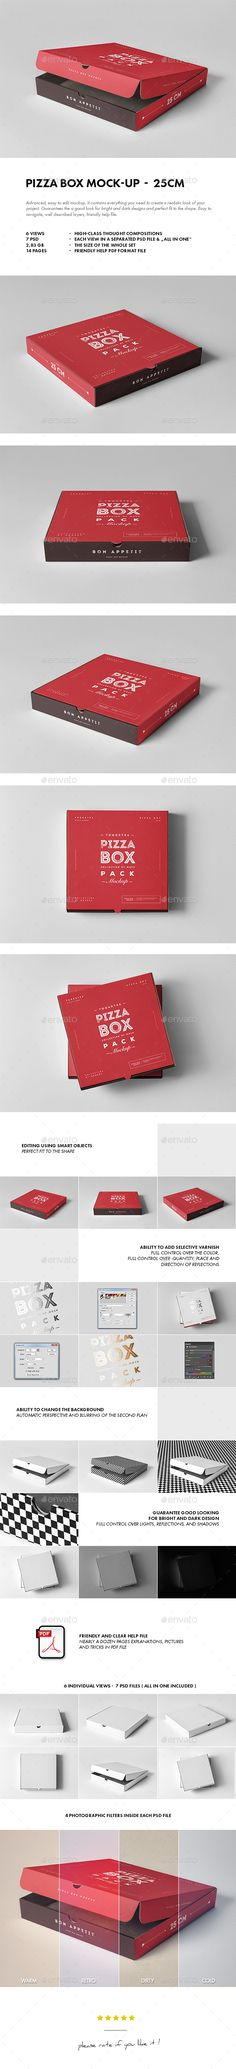 25 Pizza Box Mockup — Photoshop PSD #mockup #pizza package • Available here → https://graphicriver.net/item/25-pizza-box-mockup/19493295?ref=pxcr